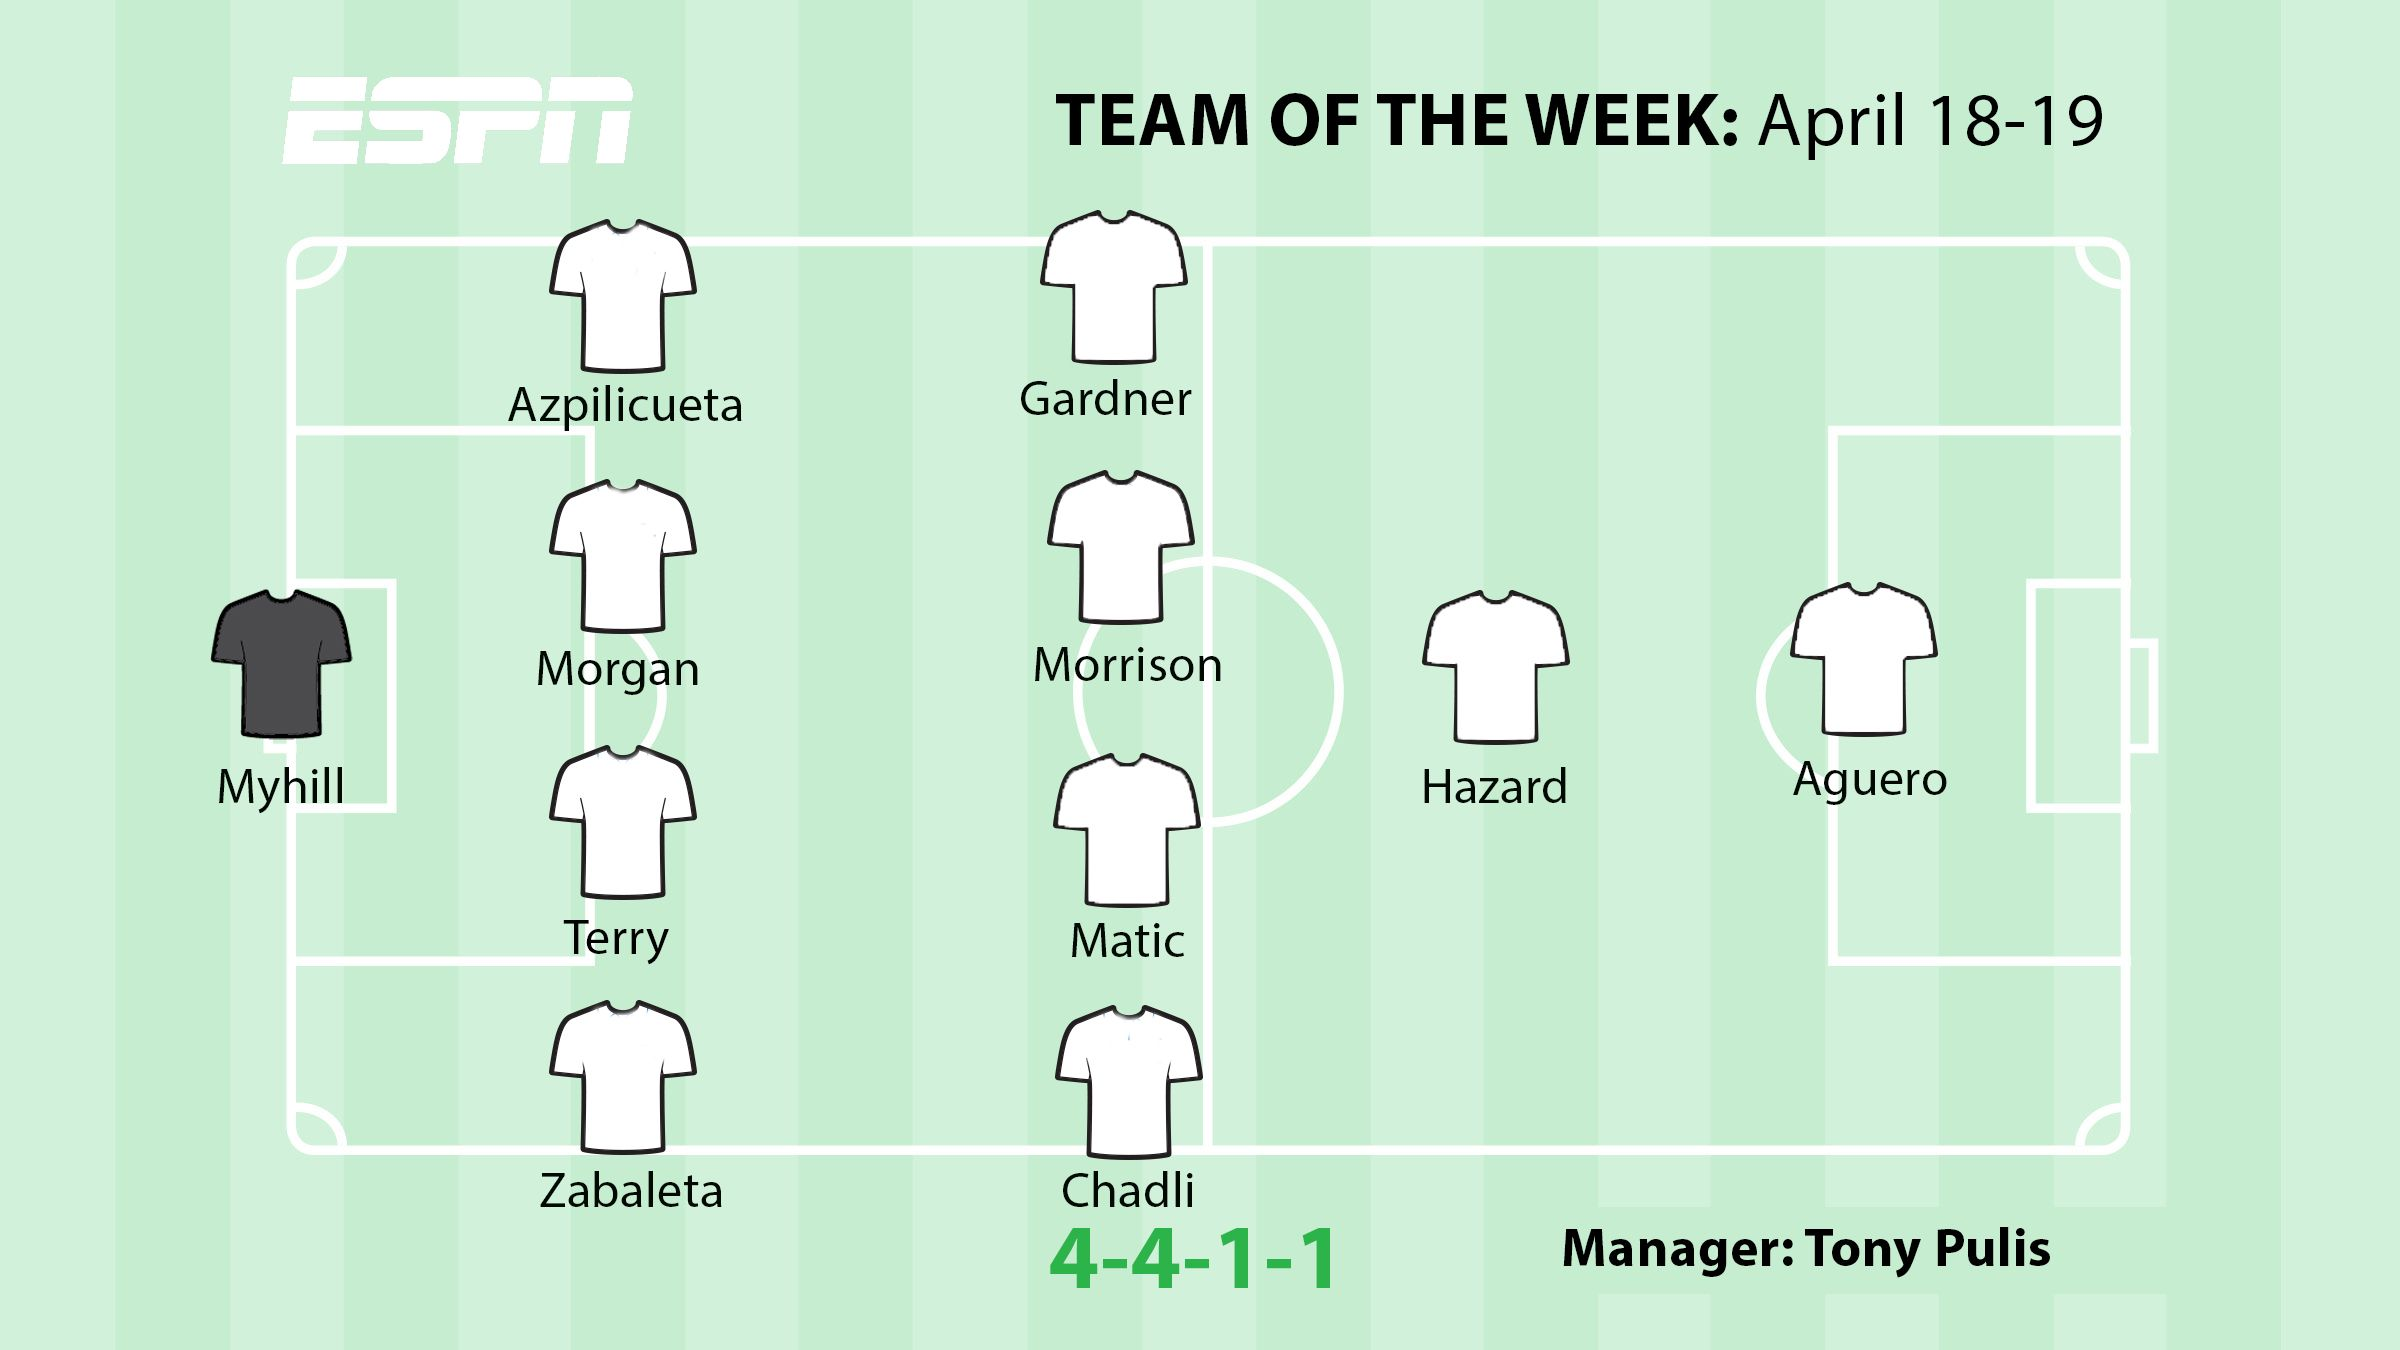 Four players from presumptive Premier League title winners Chelsea feature in the TOTW.